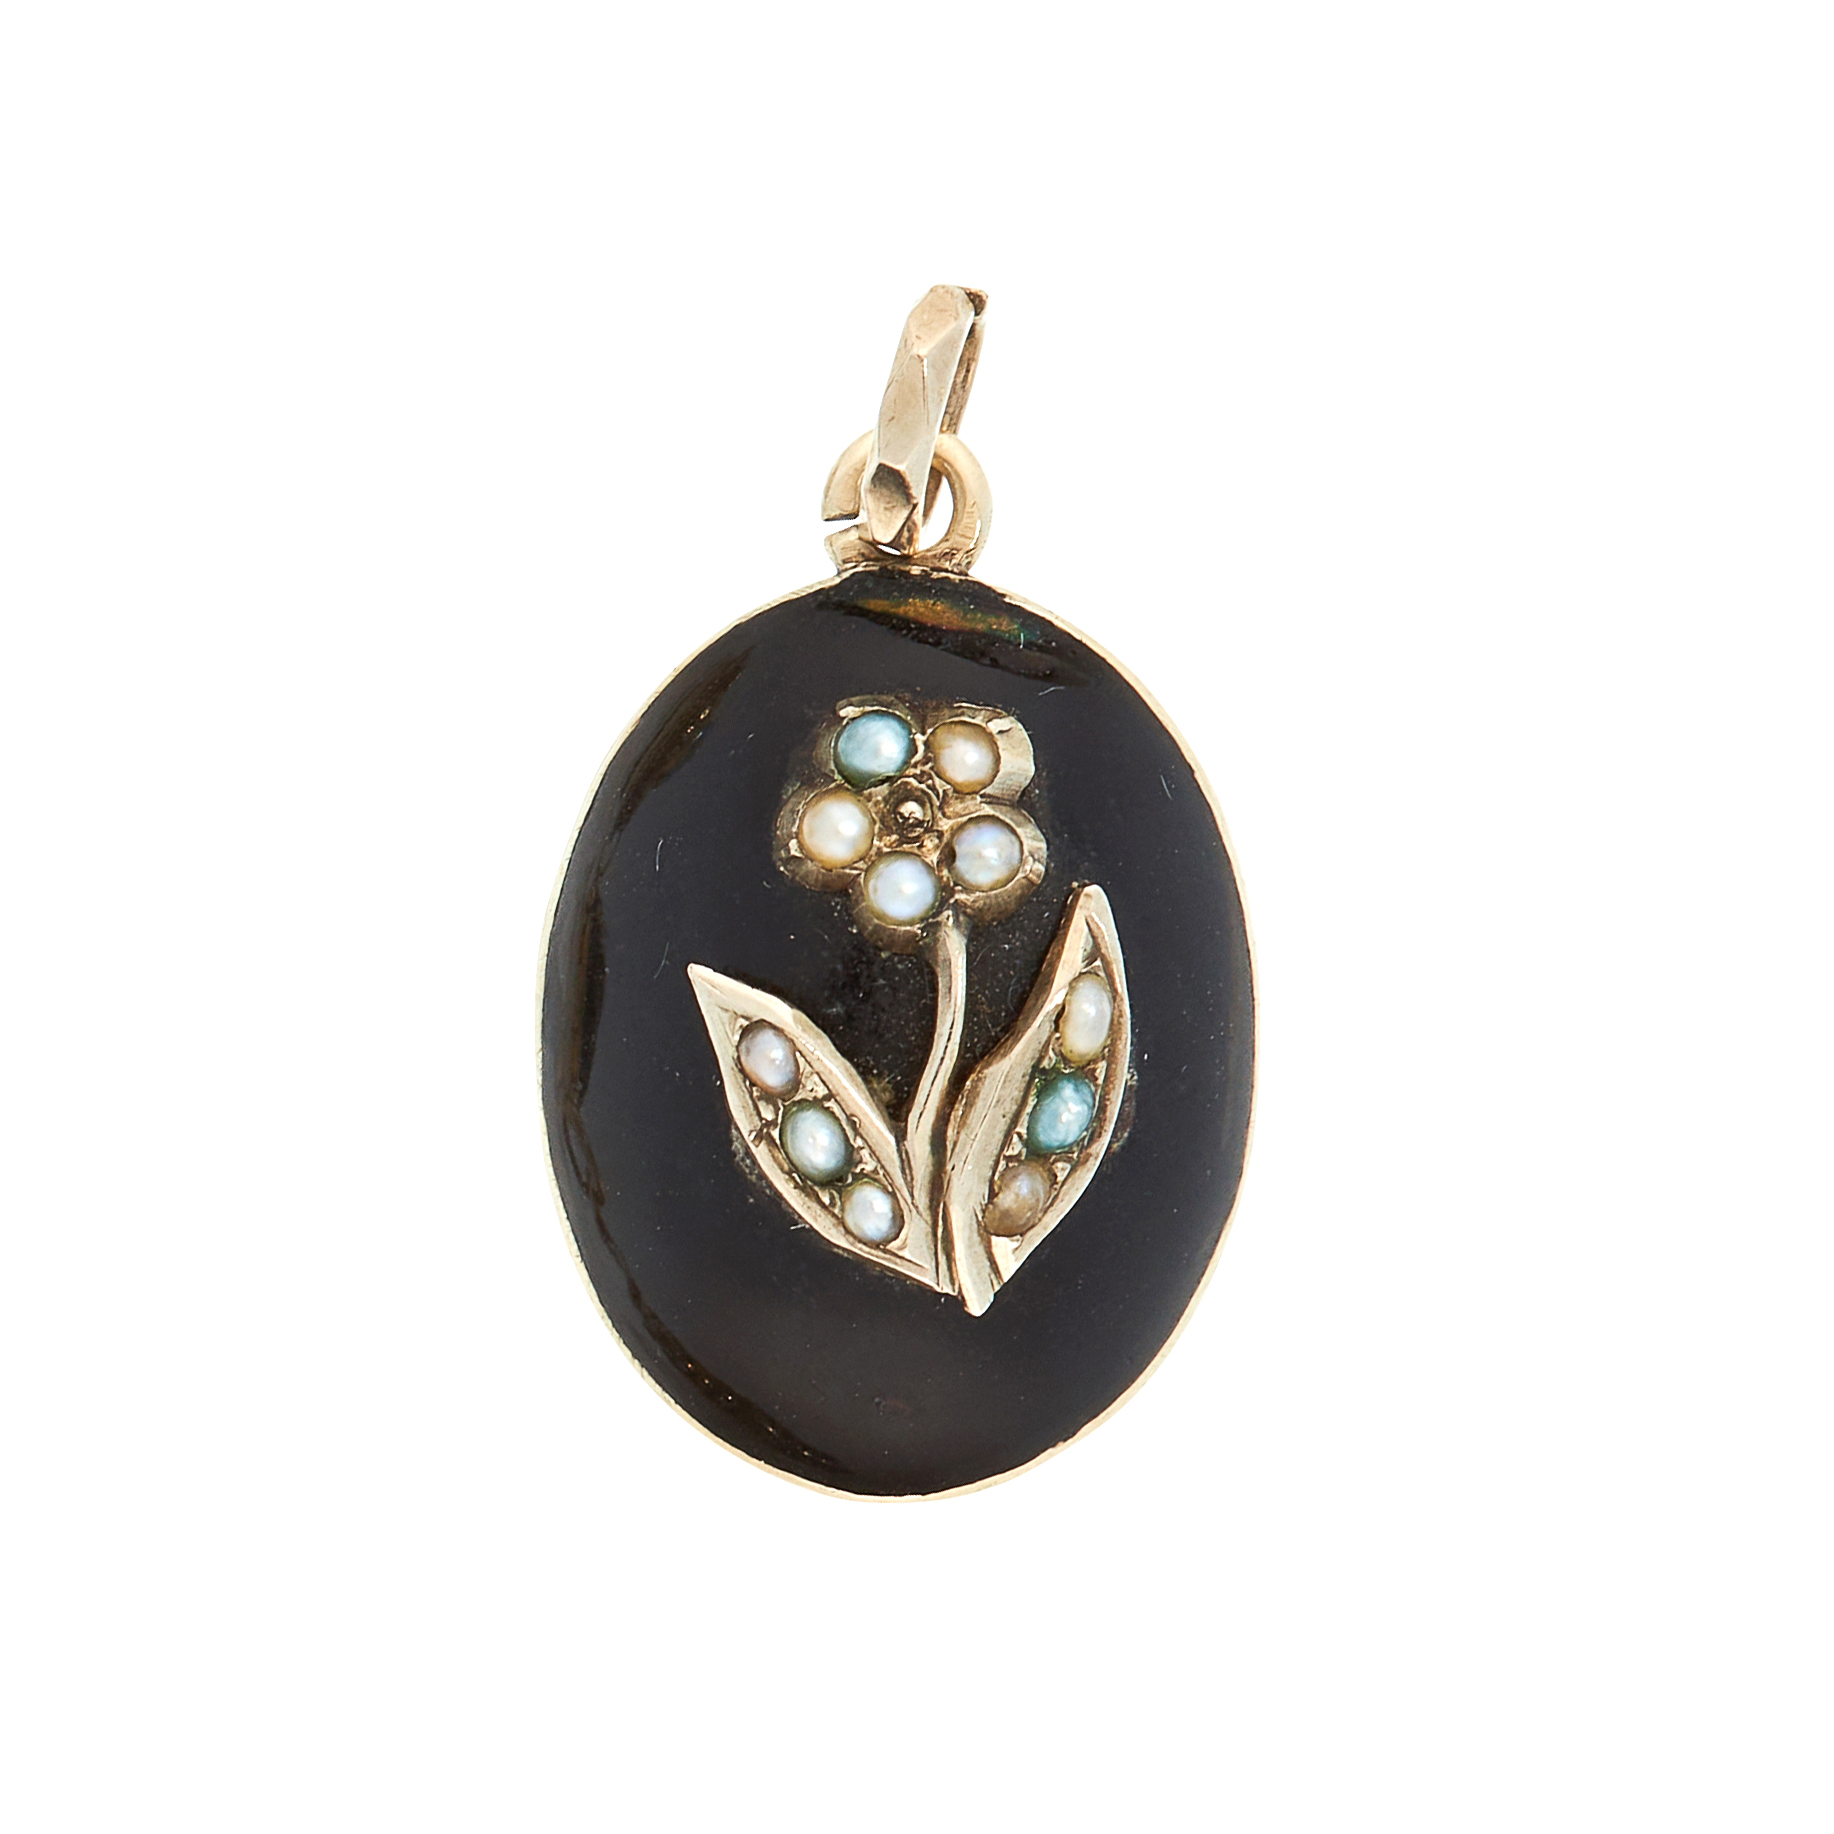 A PEARL AND ENAMEL MOURNING LOCKET PENDANT, 19TH CENTURY the oval body with an applied forget-me-not